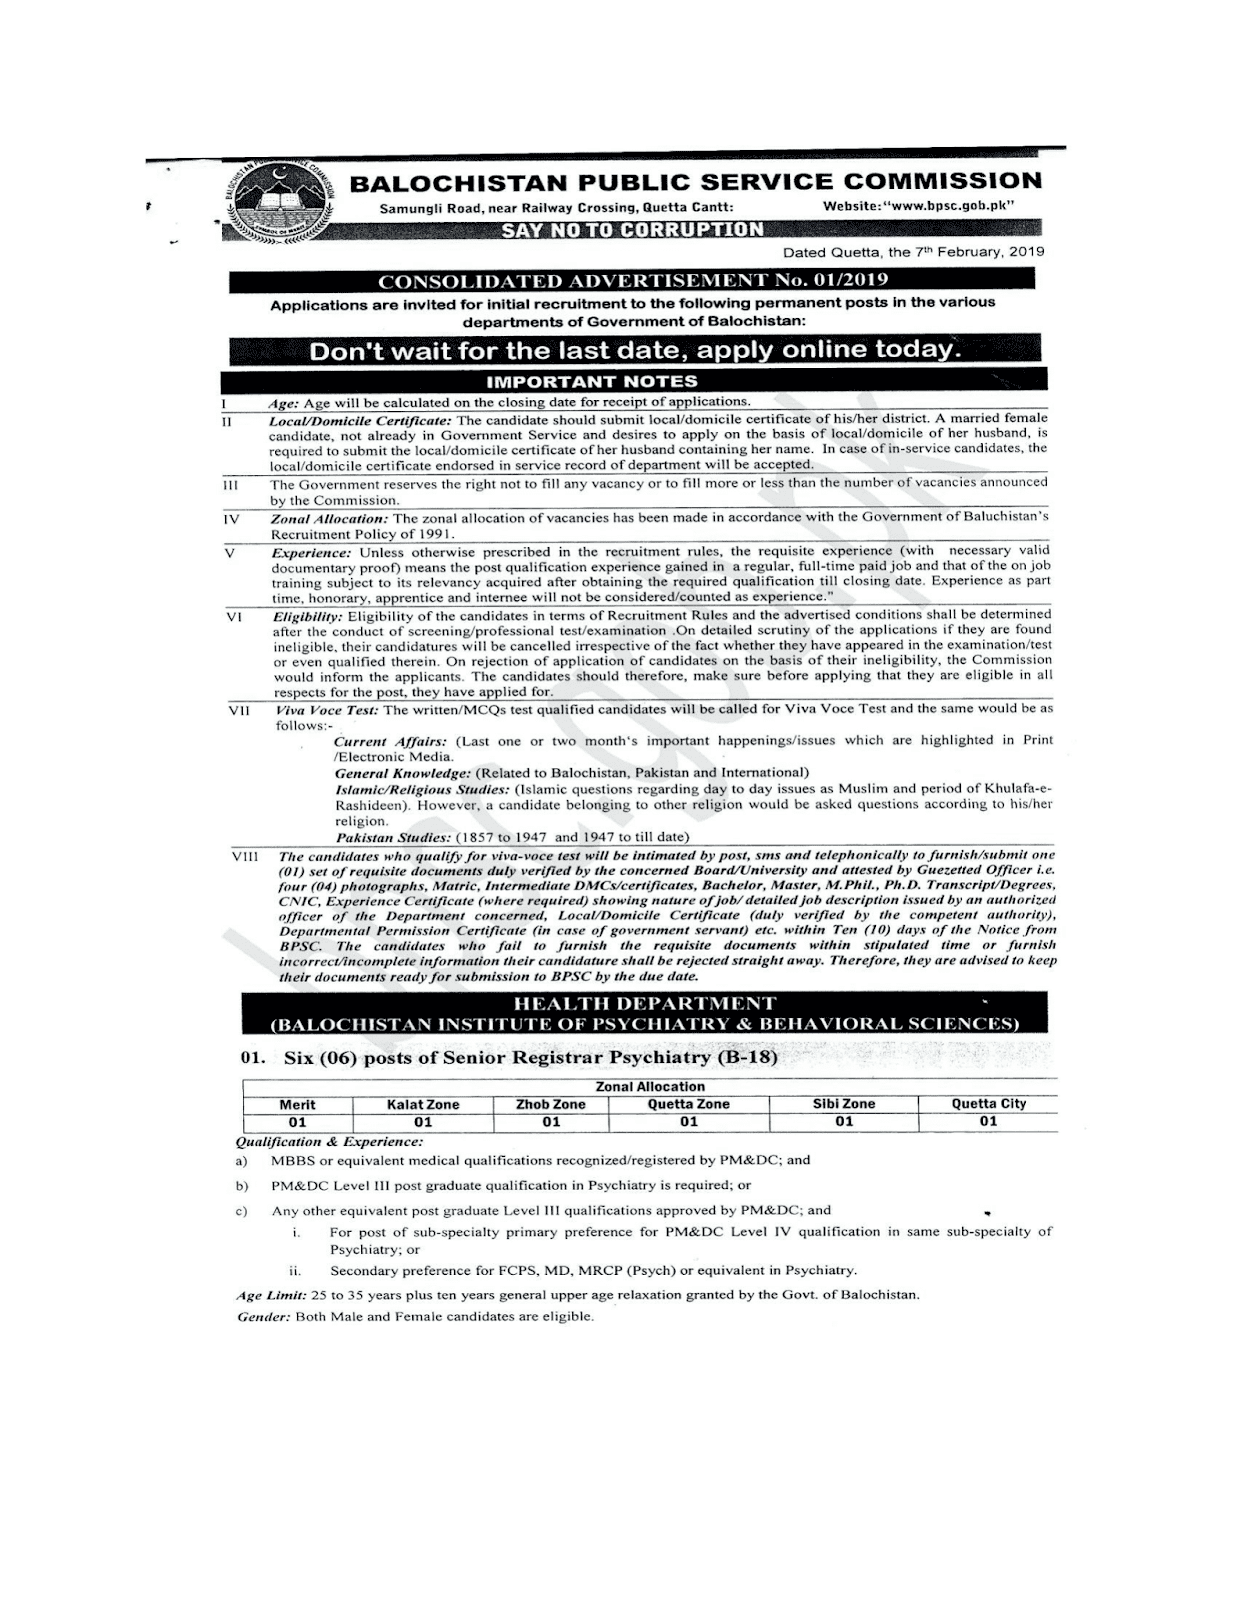 BPSC Advertisement 01/2019 Page No. 1/3